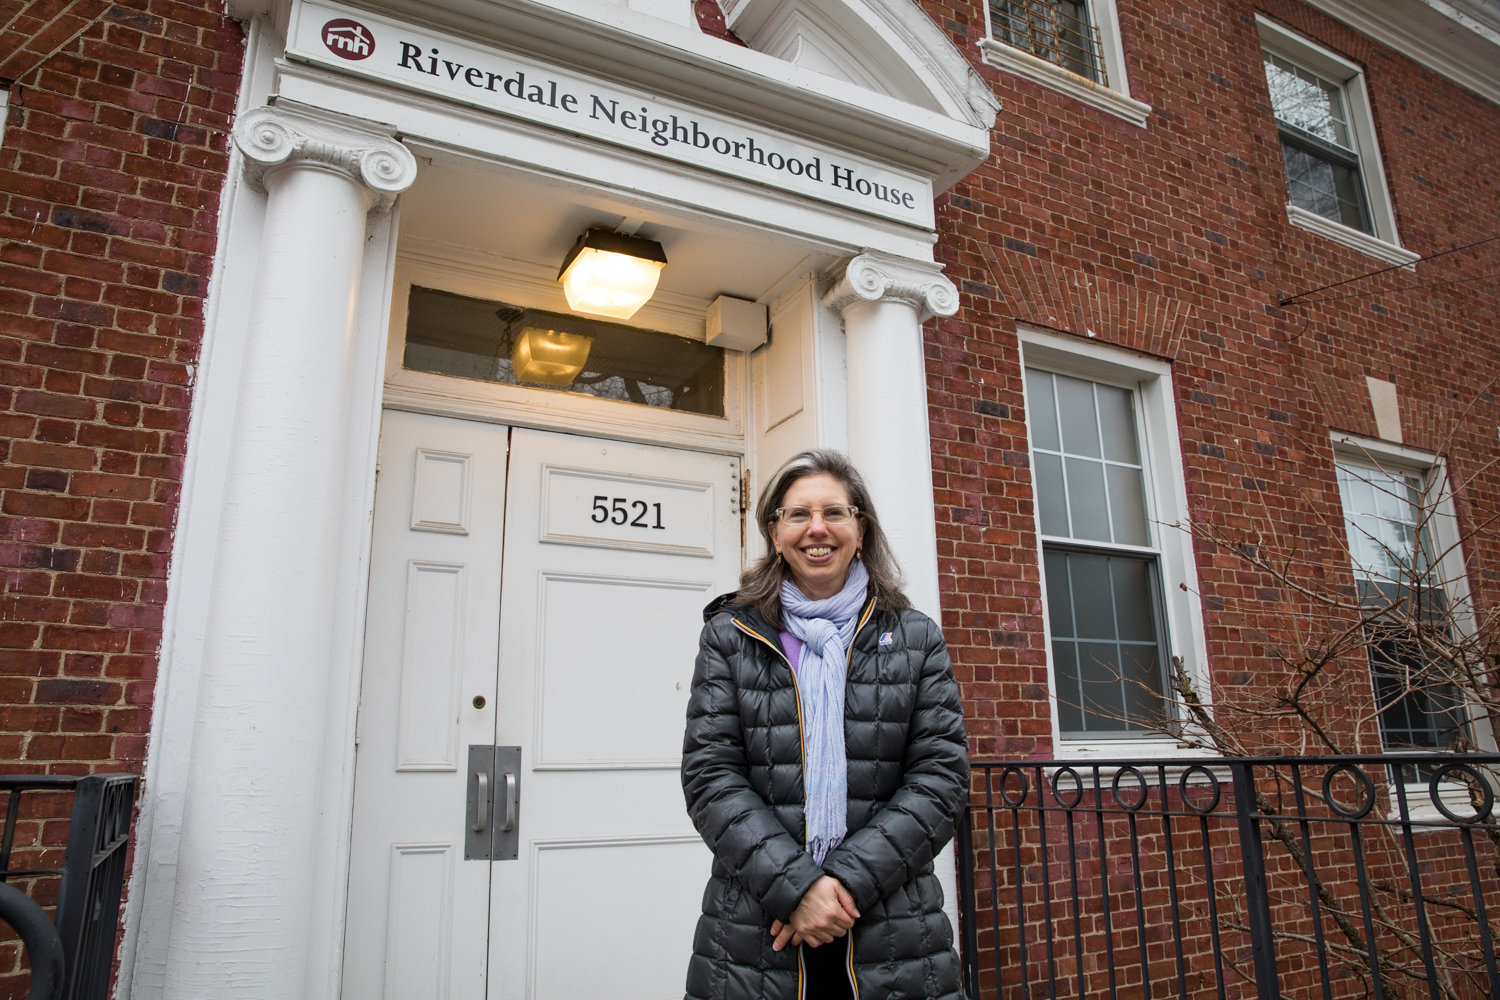 Riverdale Neighborhood House board member Amanda Salzhauer has marveled at how different members of RNH's staff have helped to fill the gap while the organization searches for a new executive director.